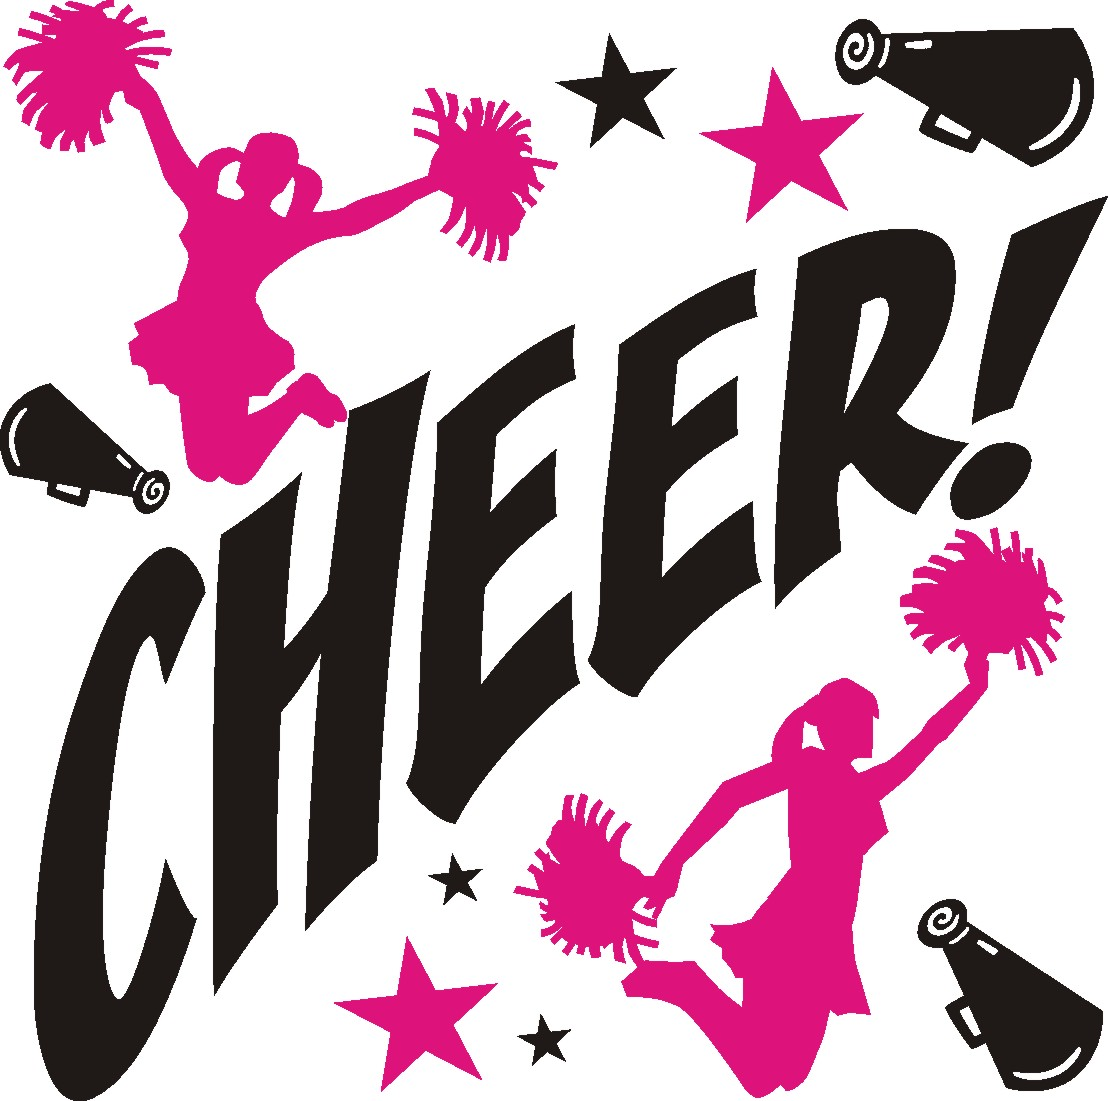 Cheerleading cheer quotes clipart